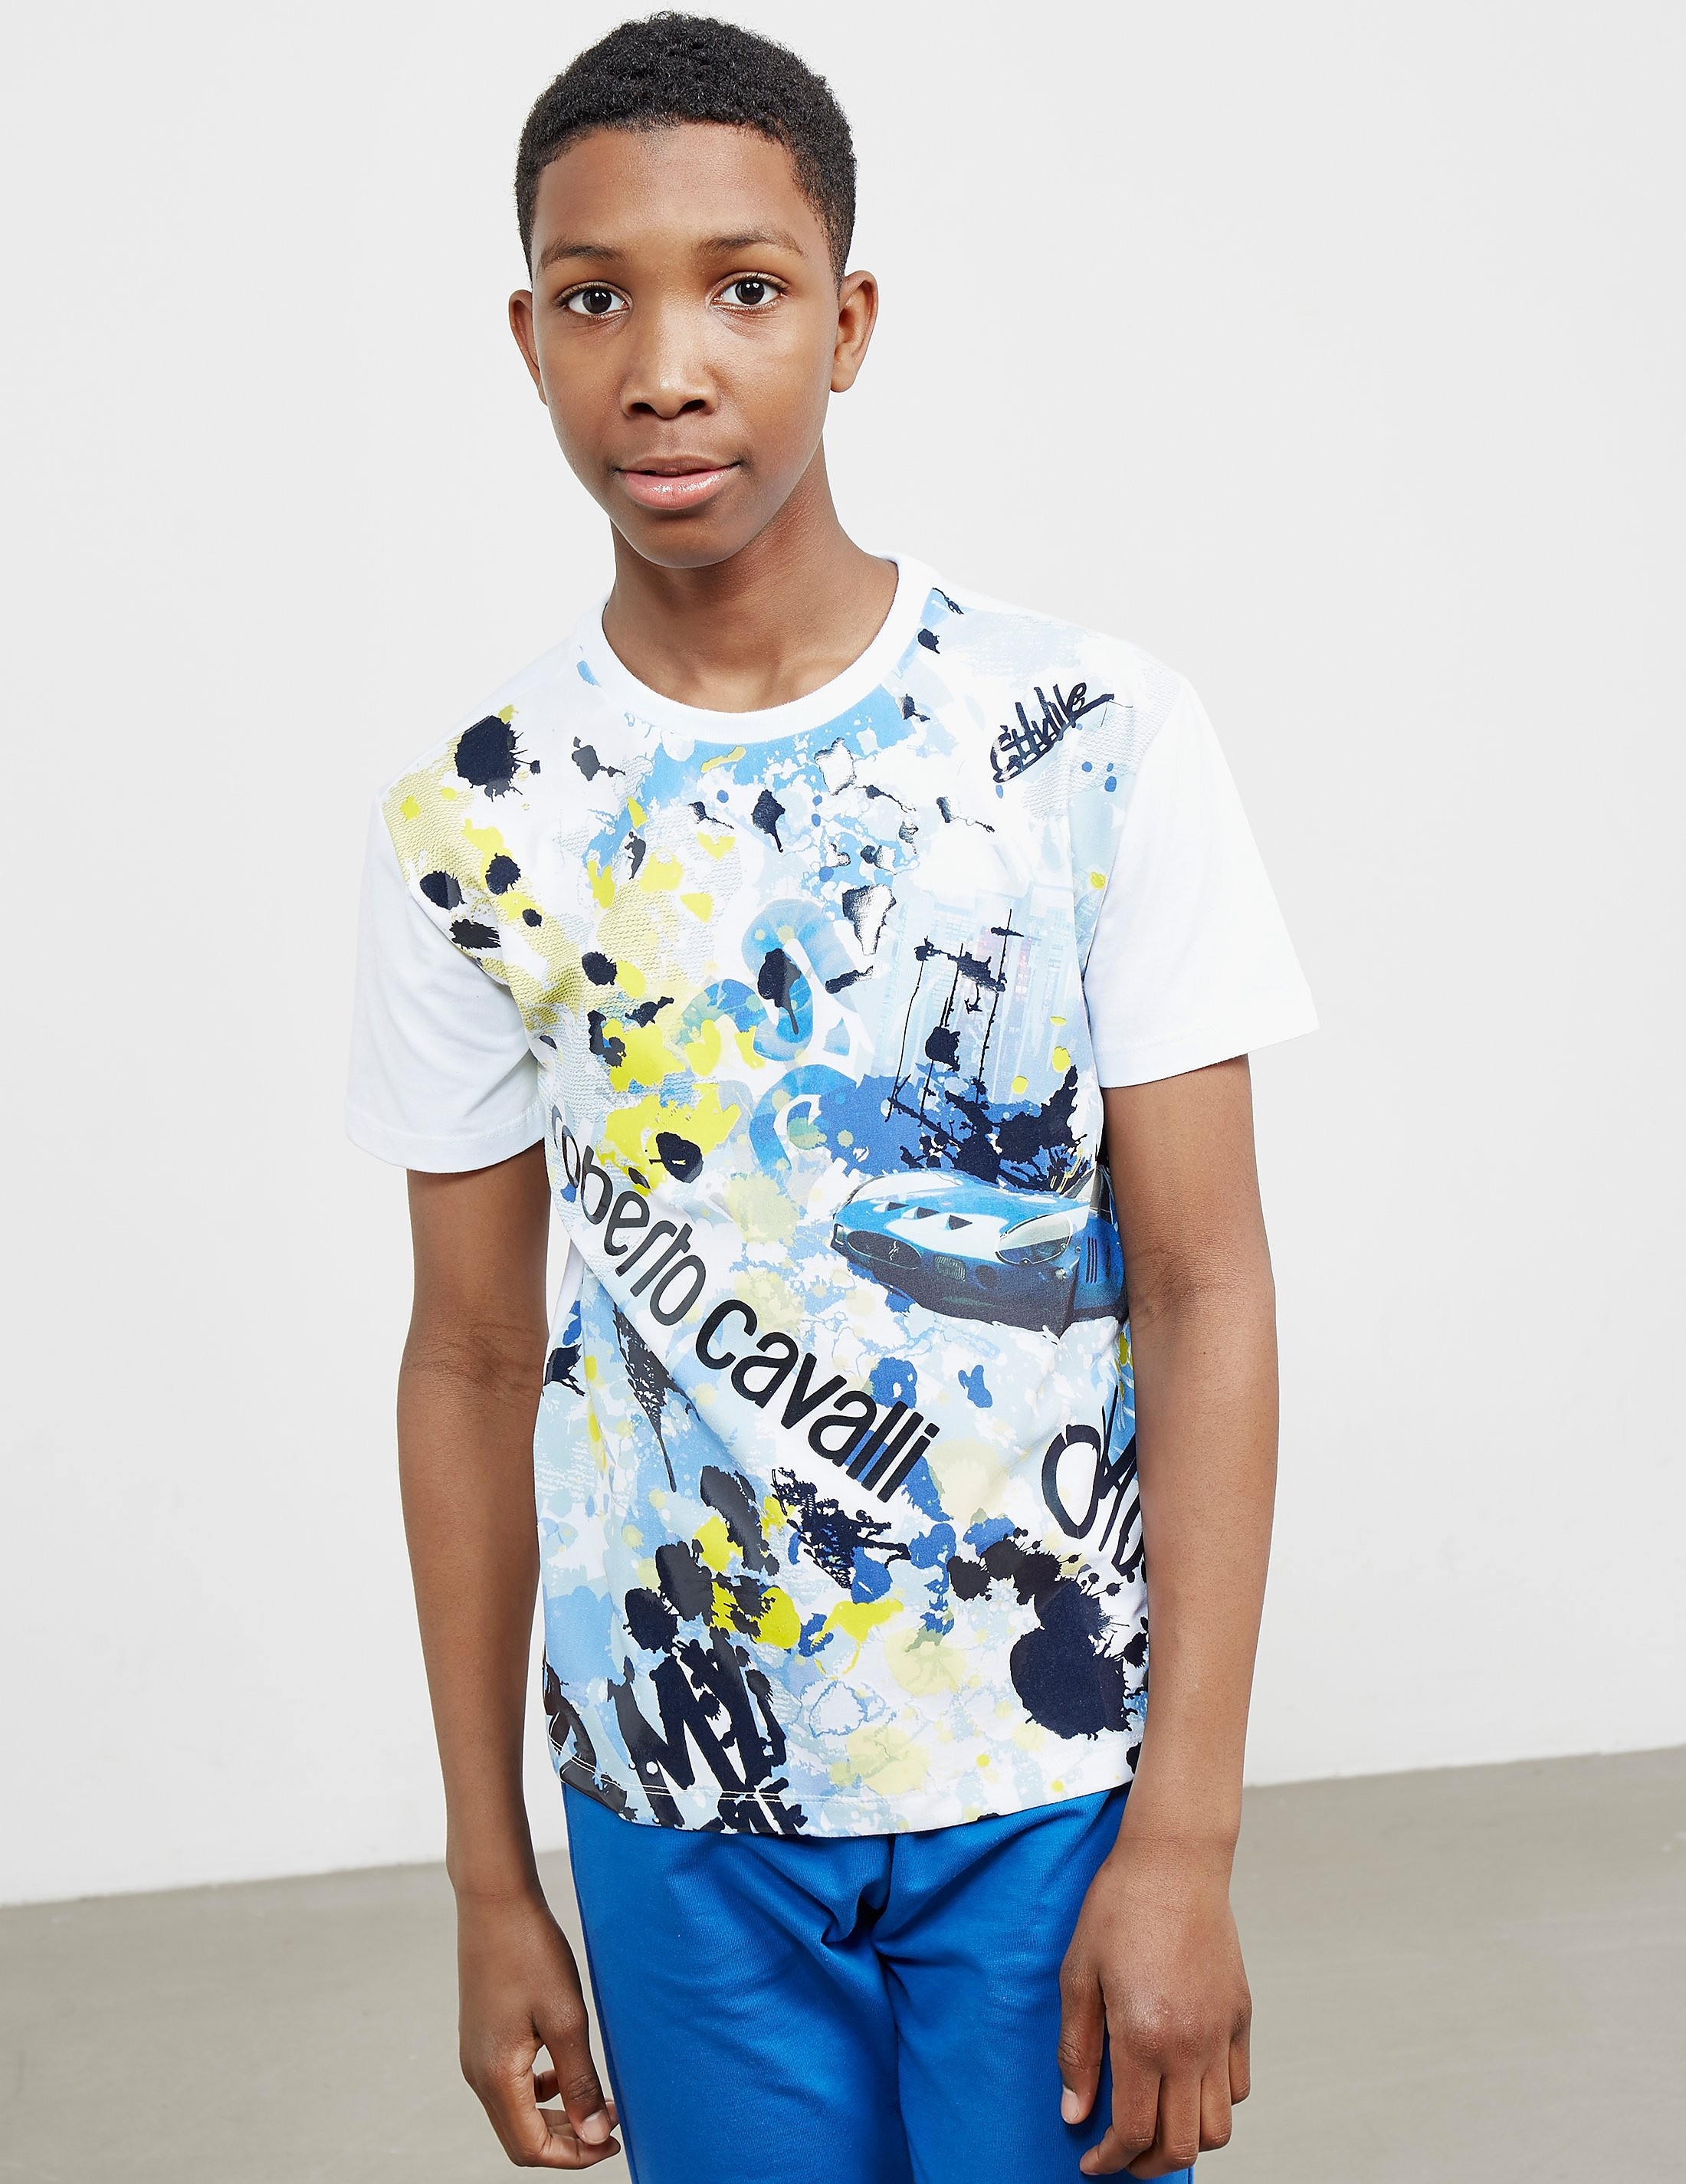 Just Cavalli Art City Short Sleeve T-Shirt